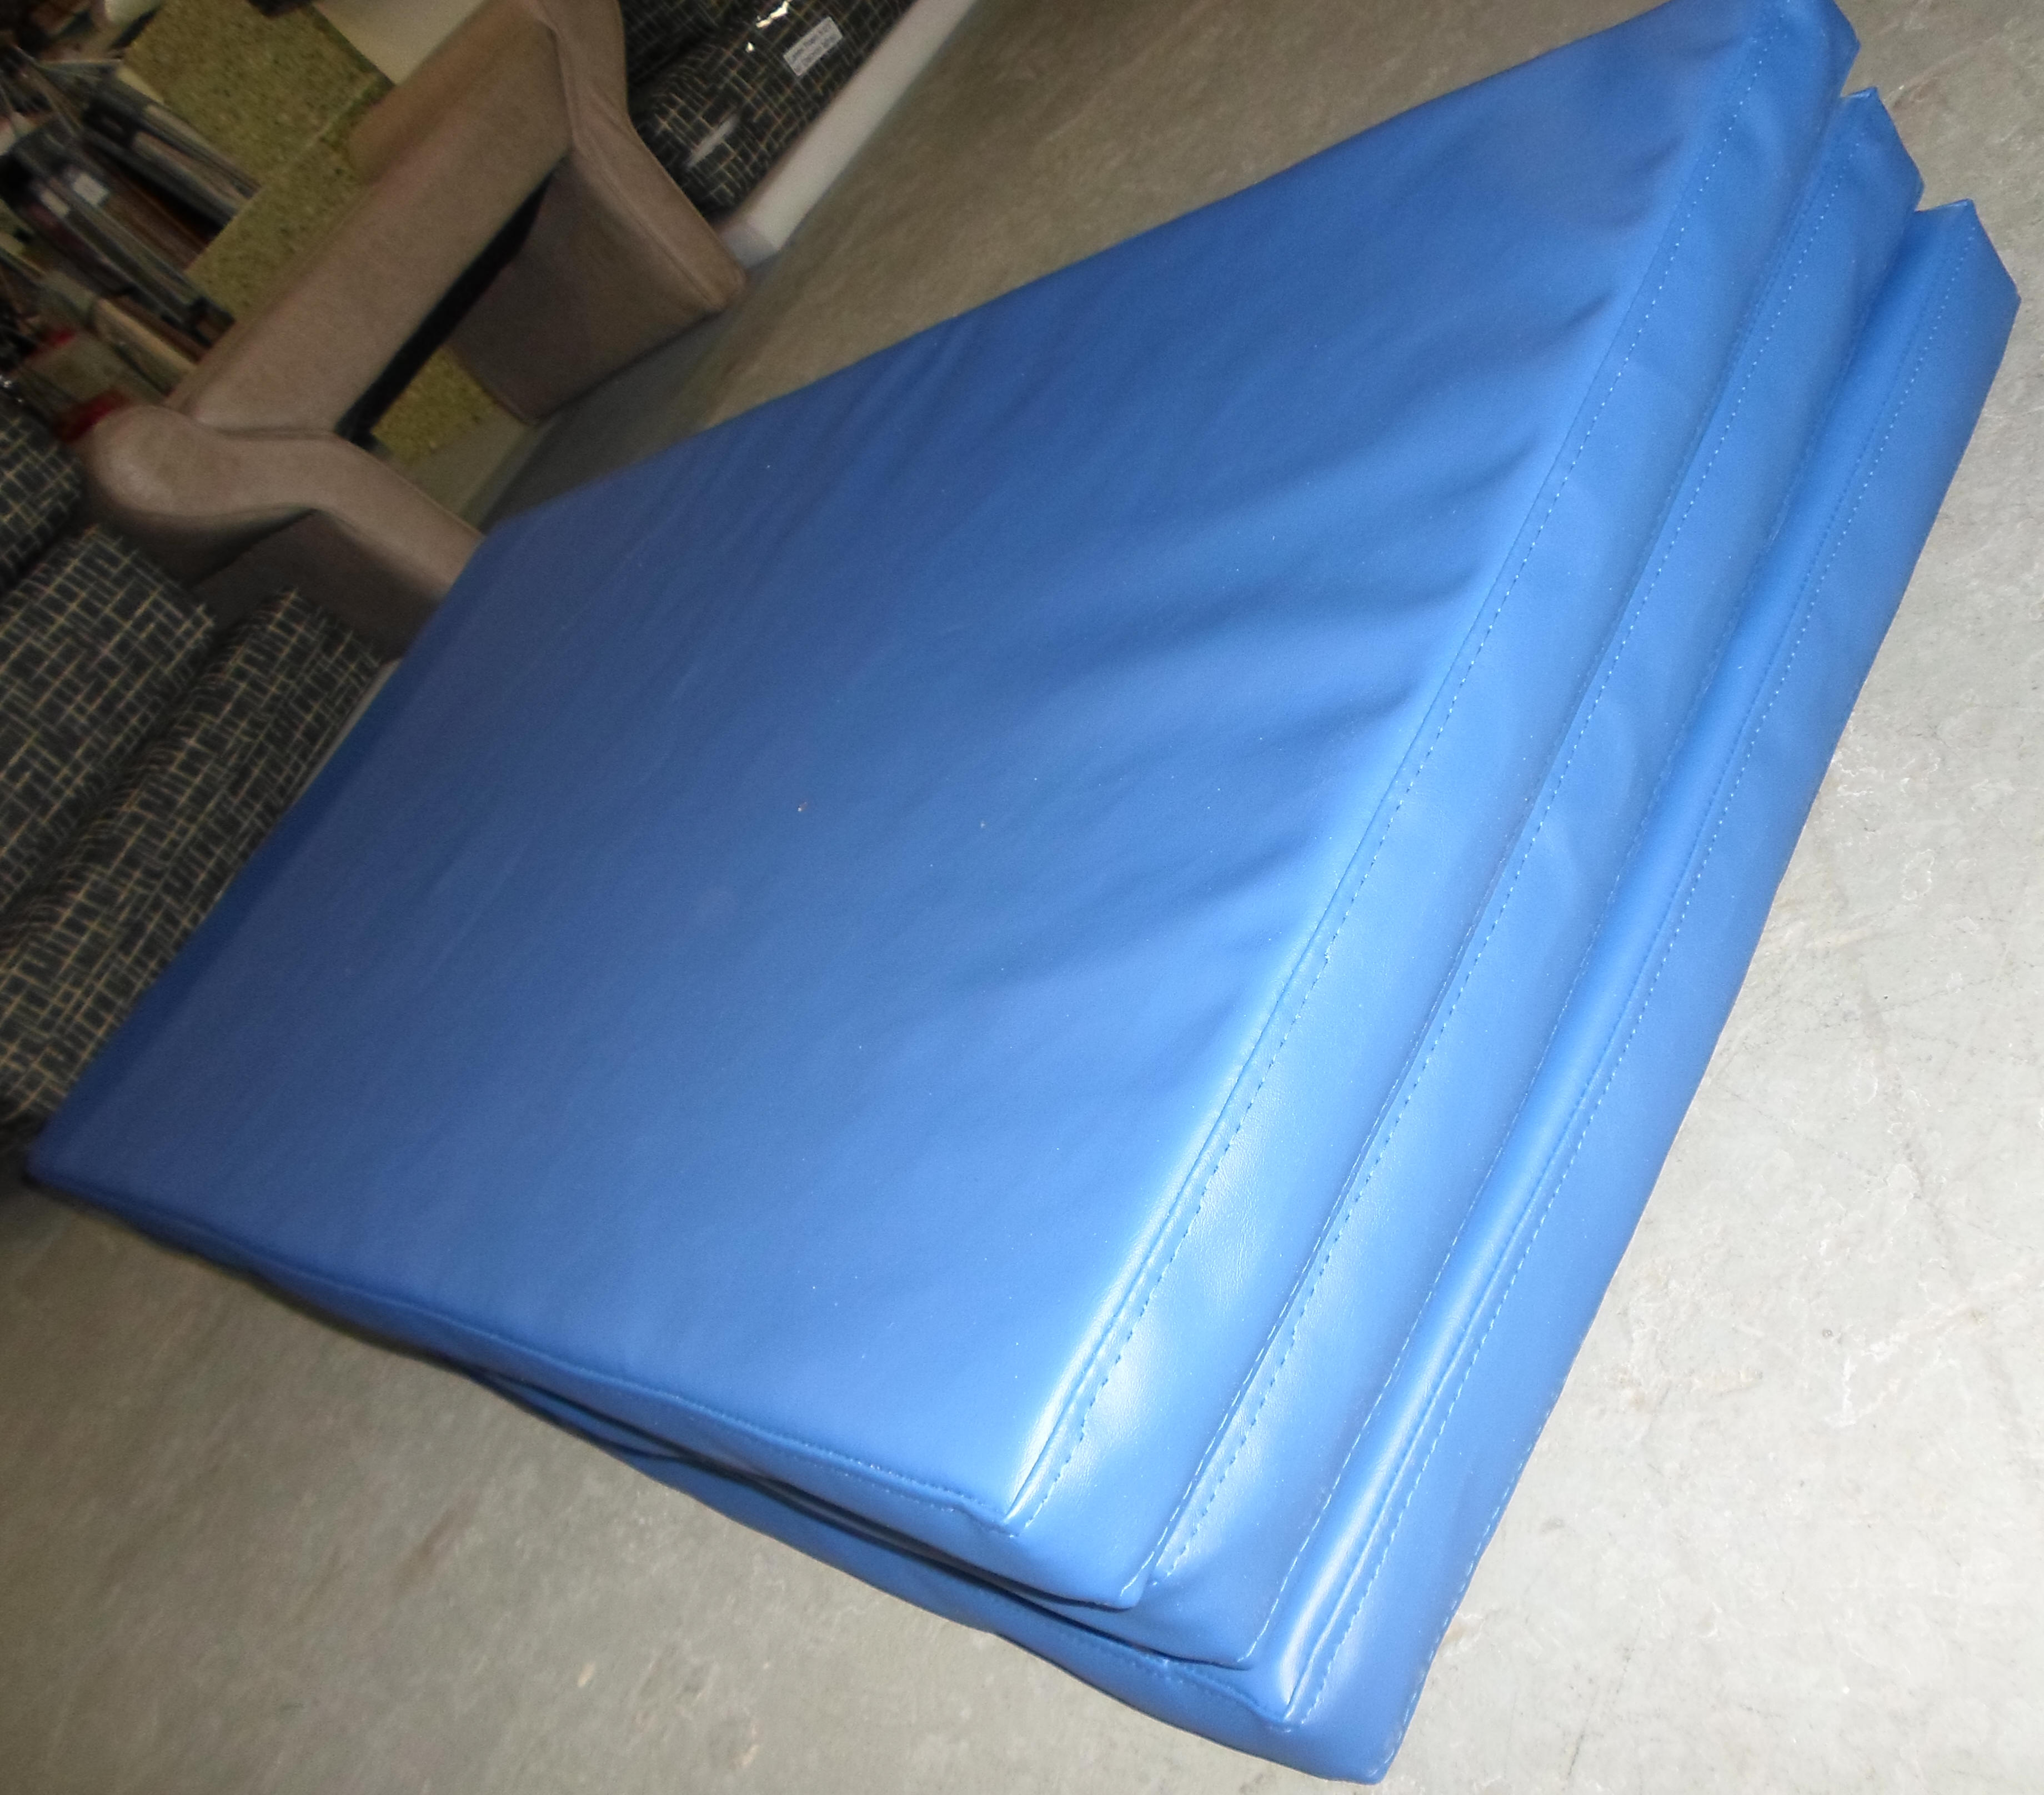 more gymnastics and vinyl high mat foam cover cheap density tri mats foldgymmat x